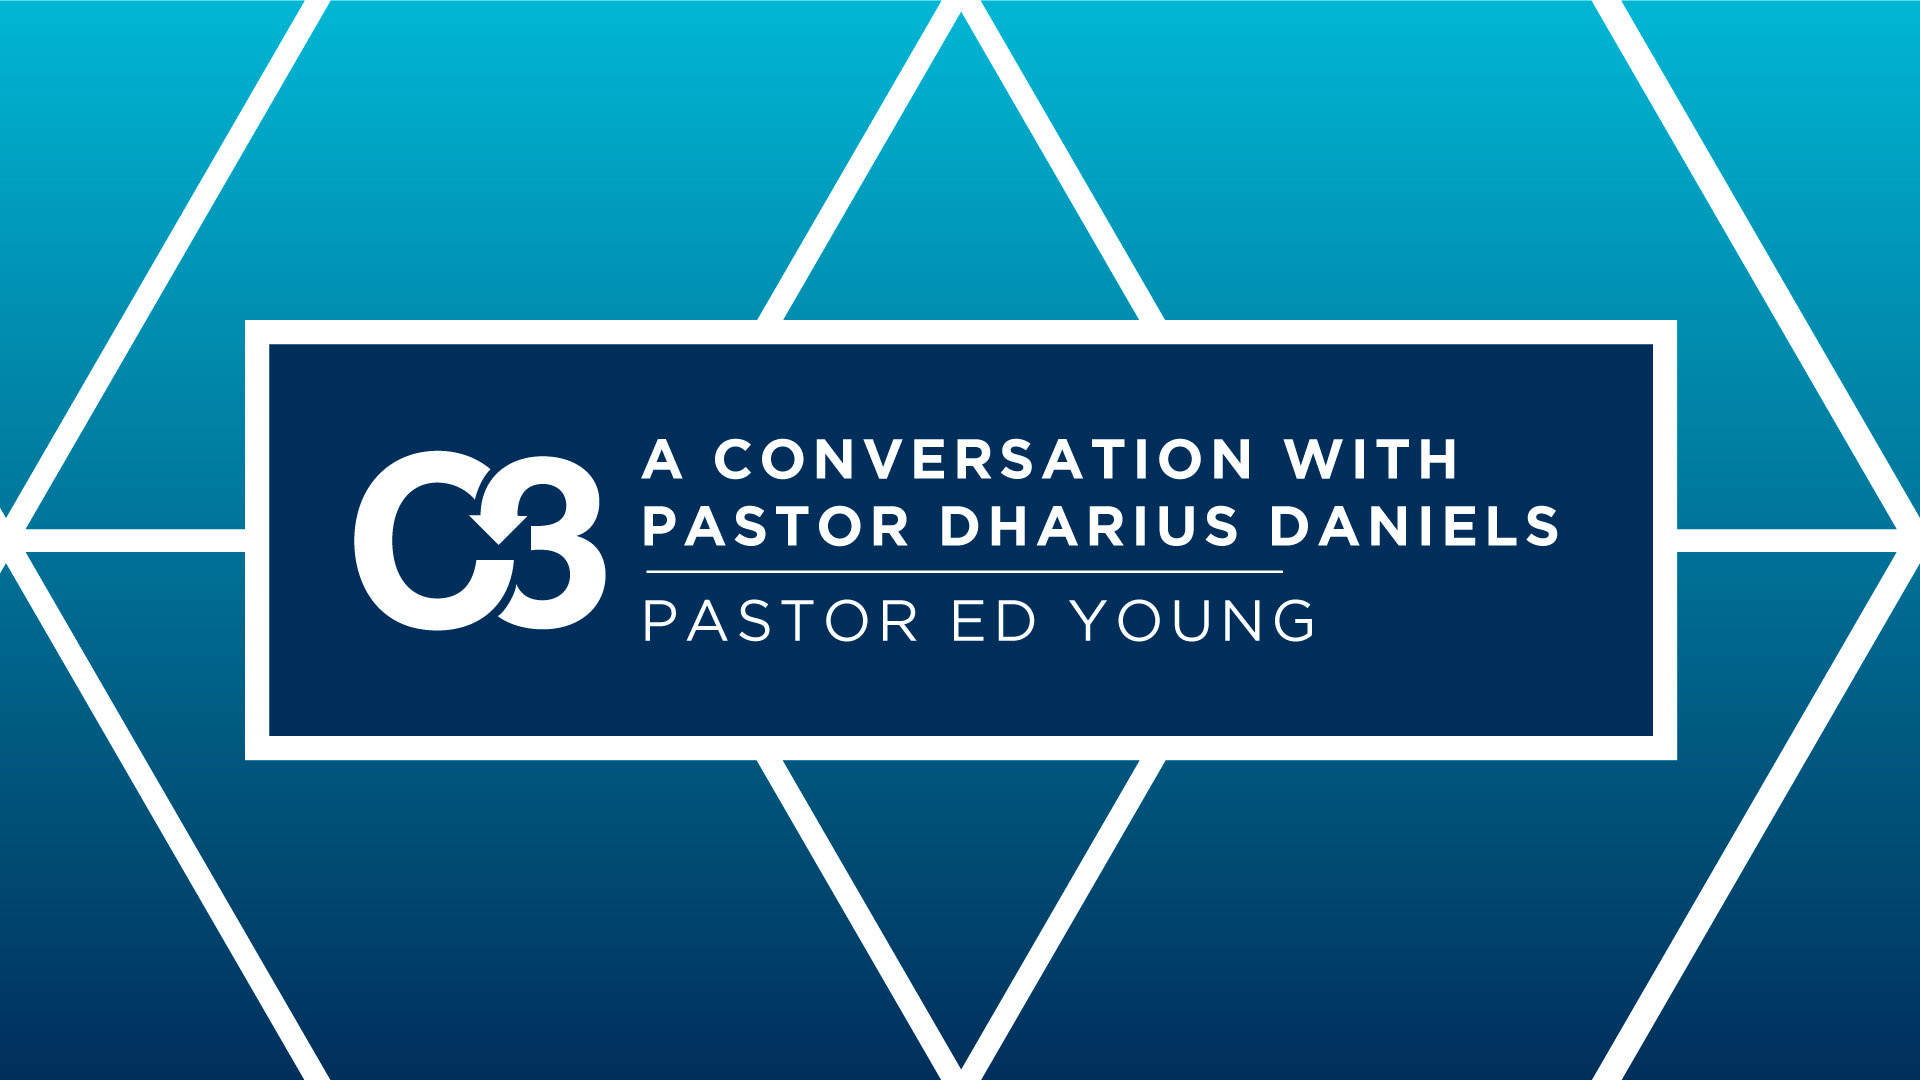 A Conversation With Pastor Dharius Daniels